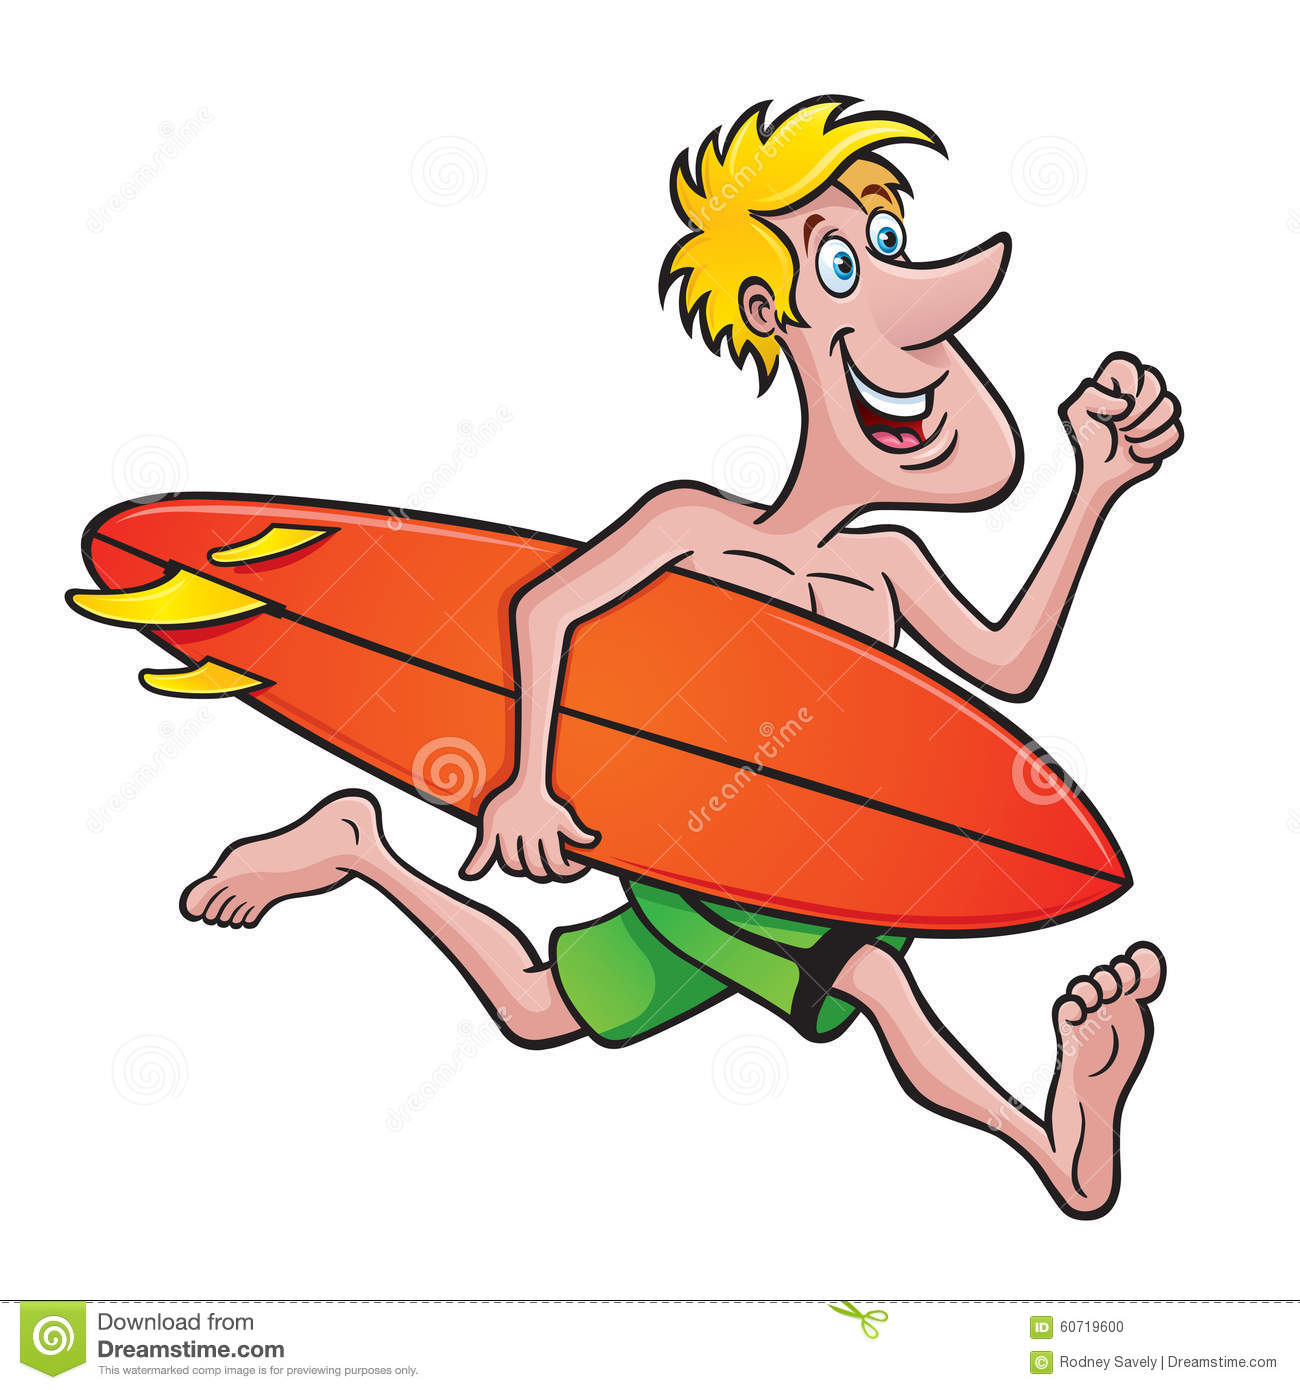 surfer running with a surfboard stock illustration illustration of rh dreamstime com Animated Surfer Clip Art Animated Surfer